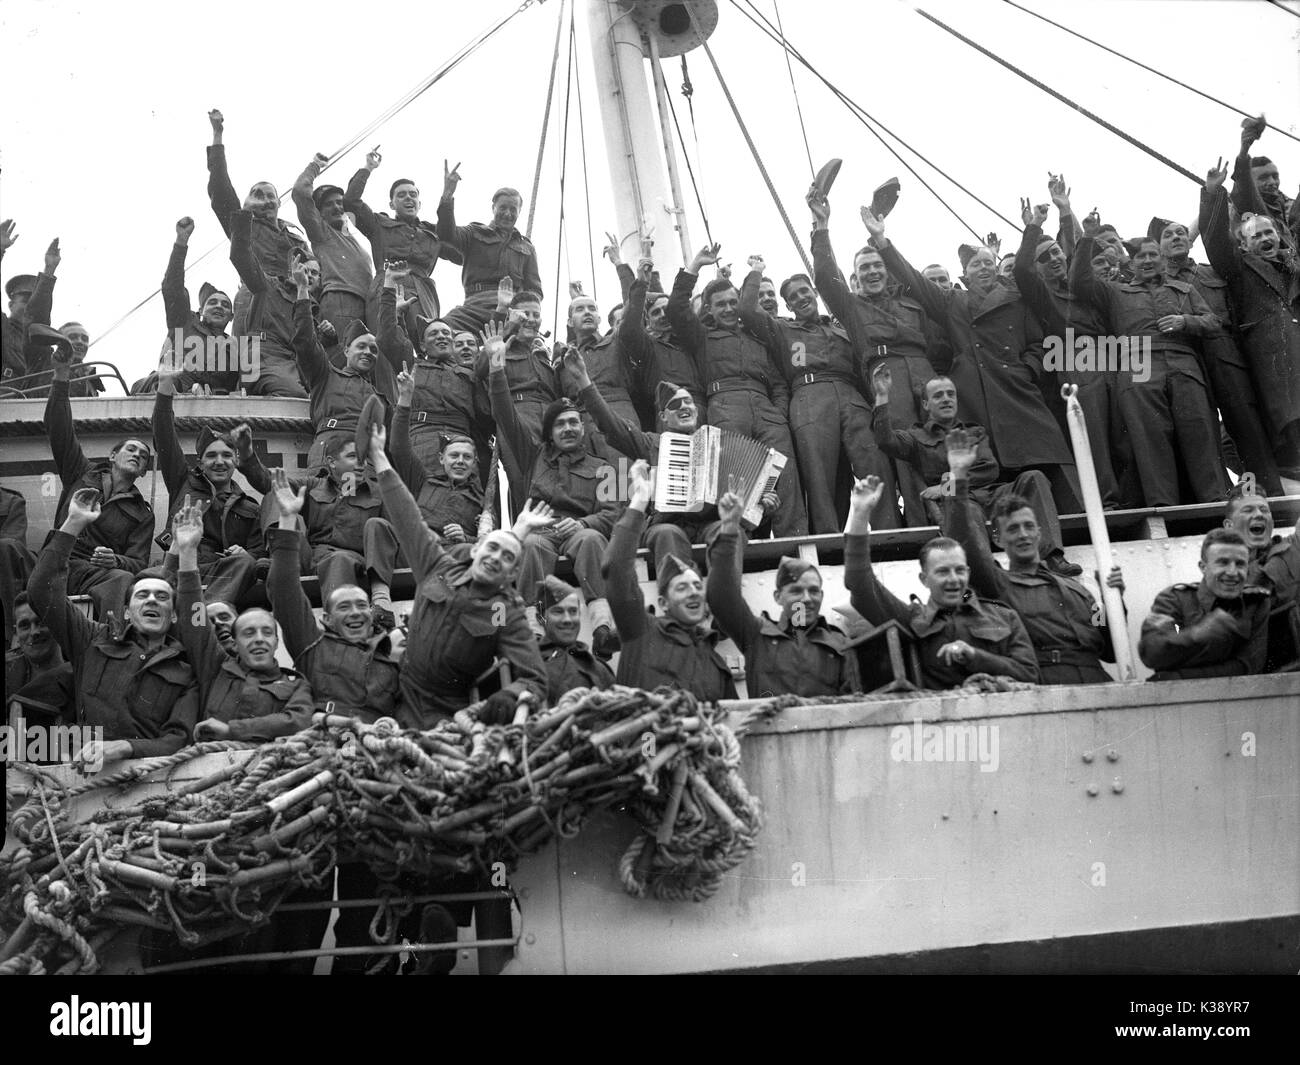 British Infantry soldiers returning home aboard troop ship during second world war - Stock Image